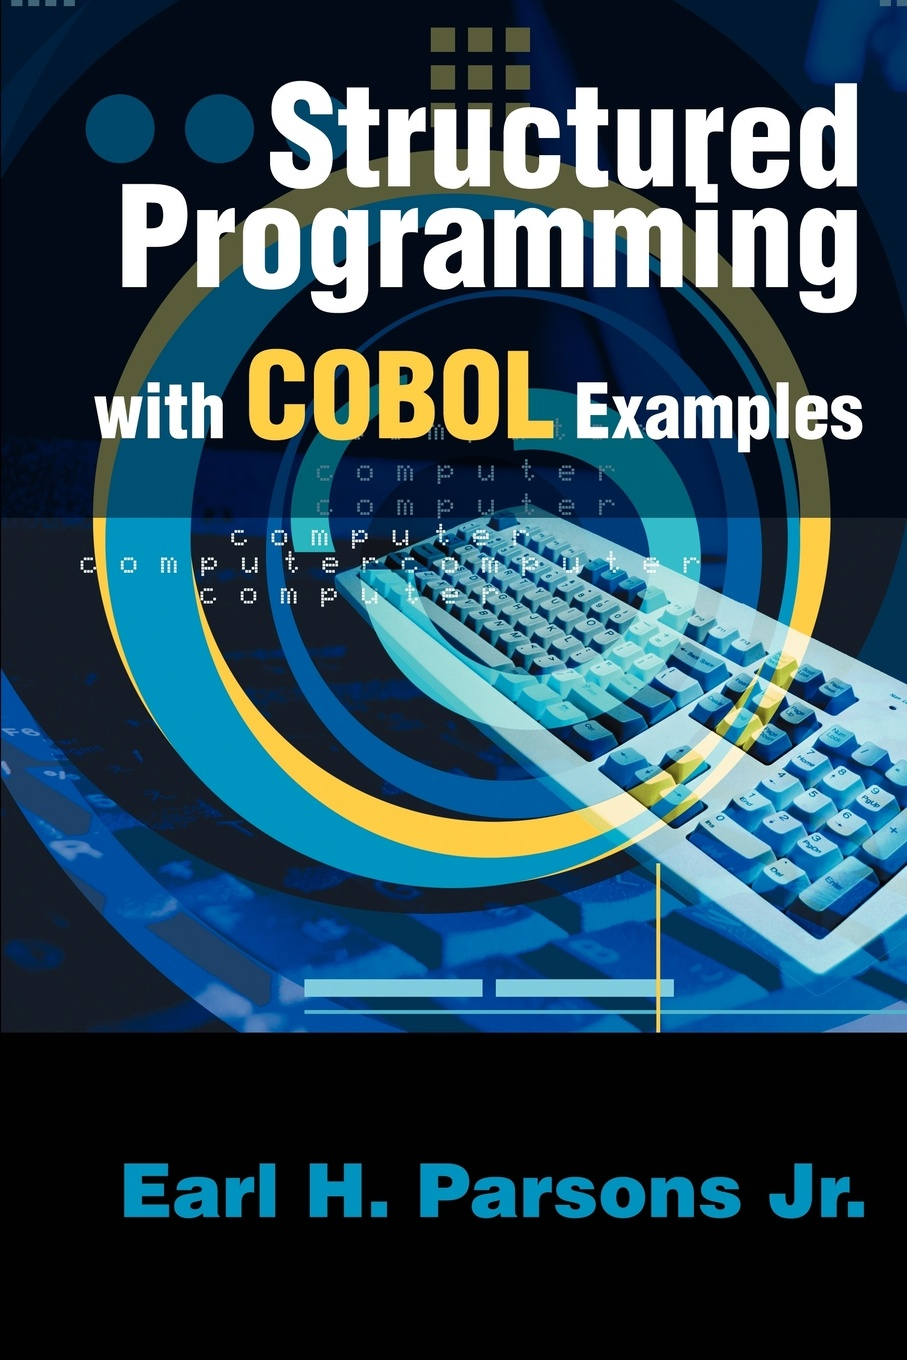 Earl H. Parsons Structured Programming with COBOL Examples